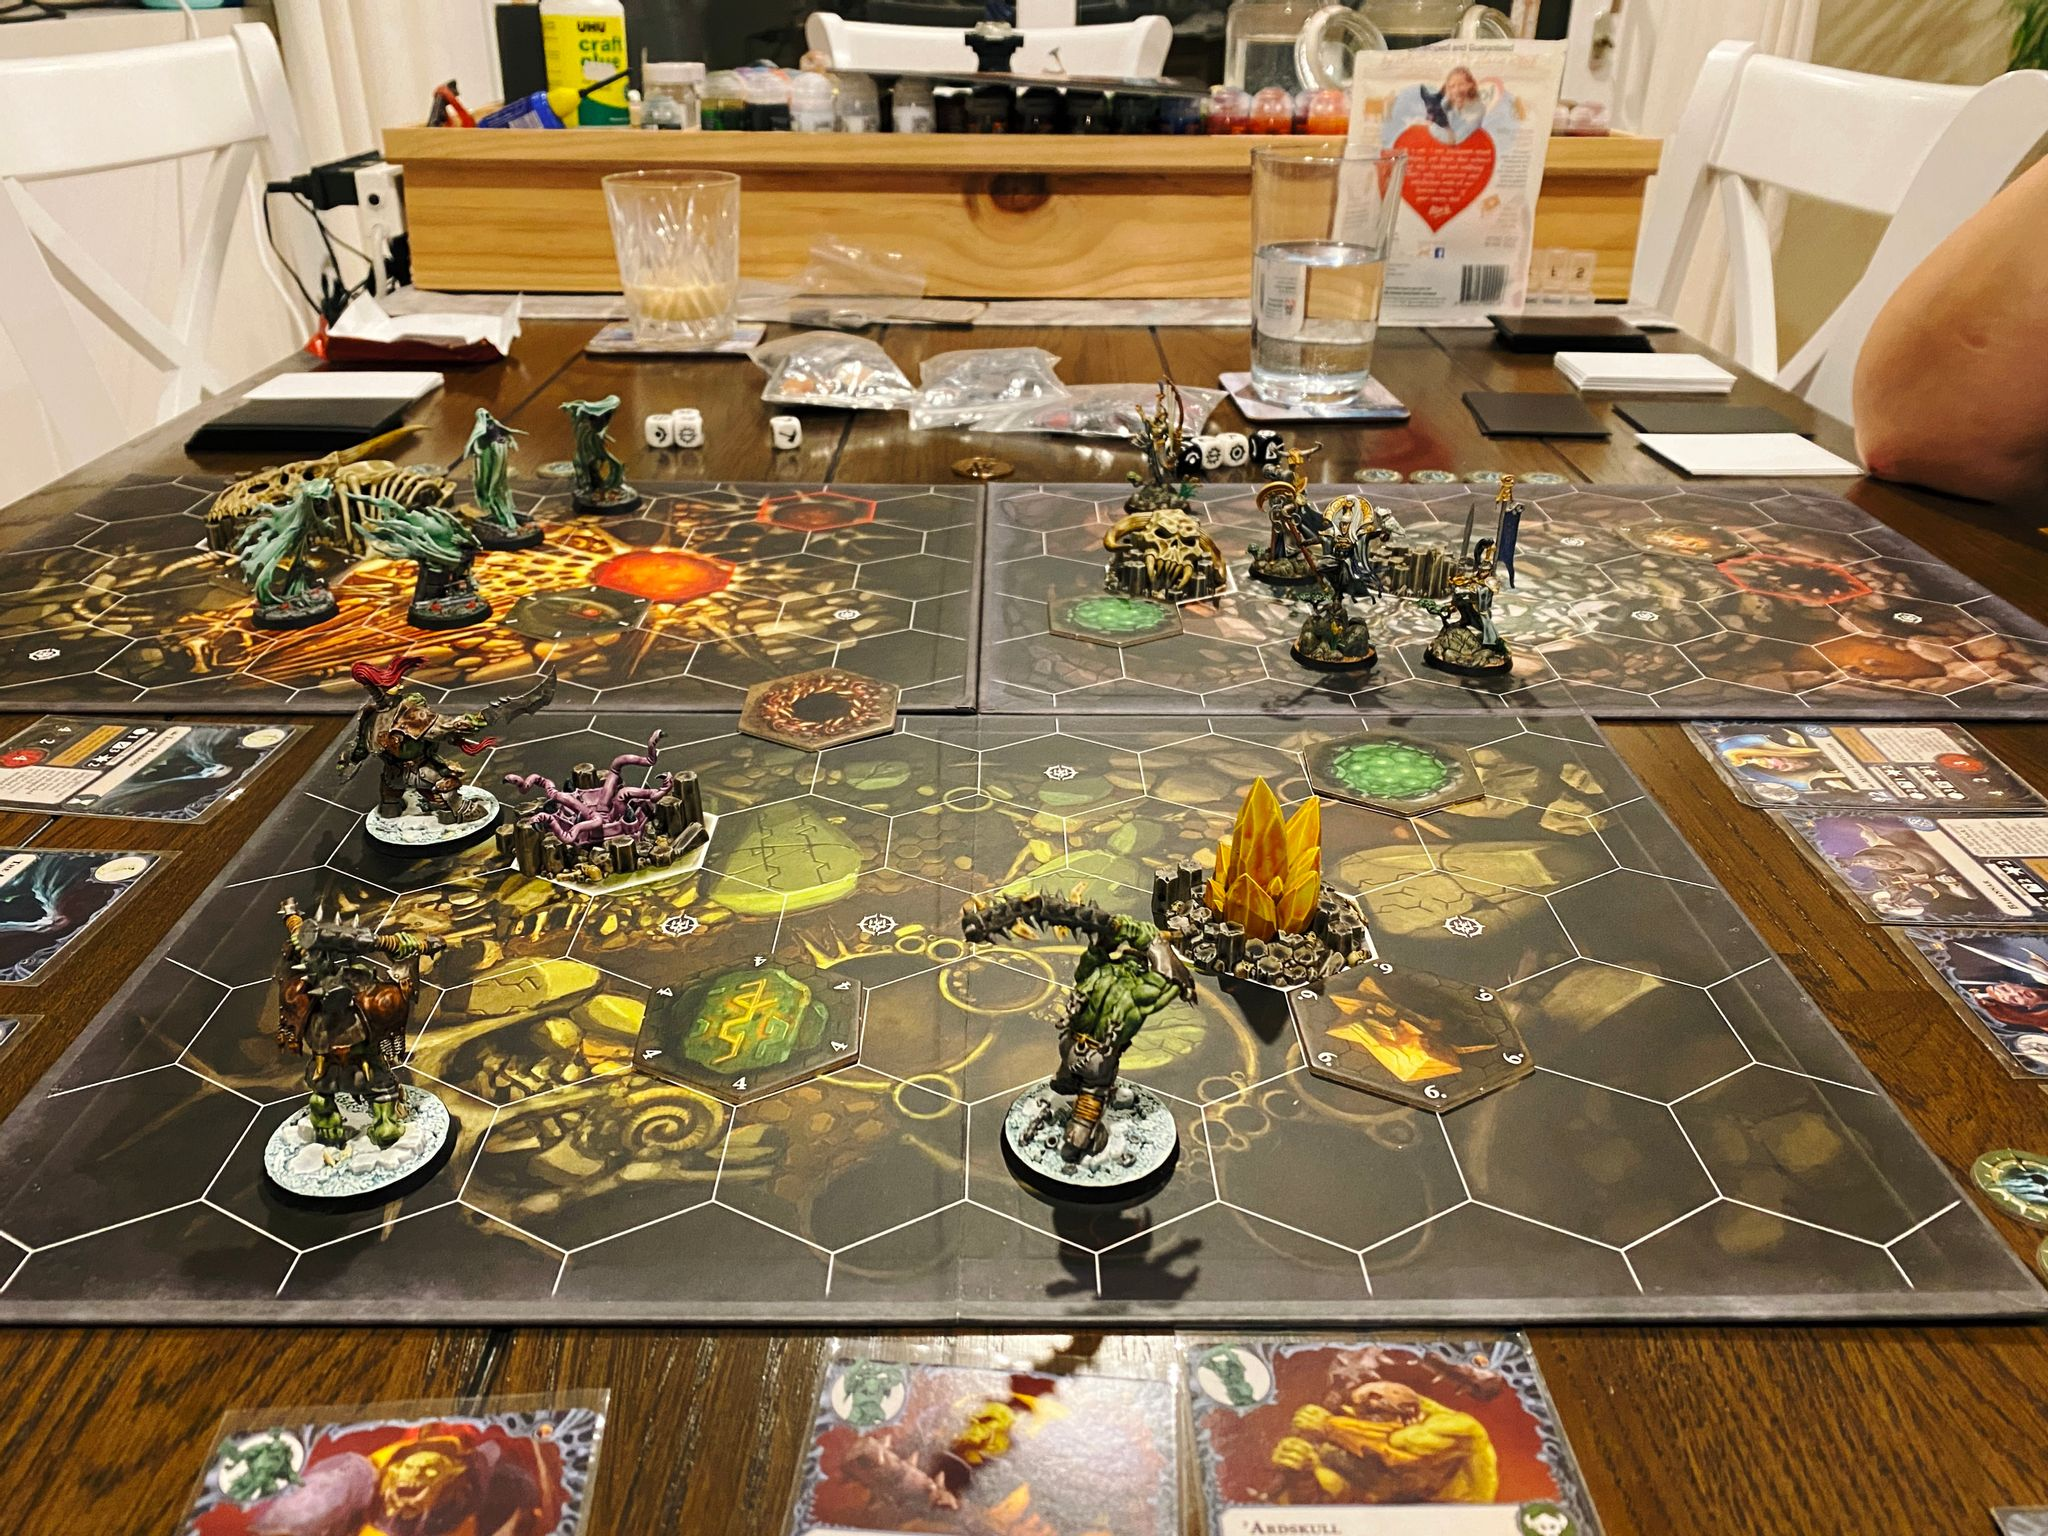 A photo of the second game of Warhammer Underworlds, this was Myari's Purifiers vs. Morgok's Krushas vs. Lady Harrow's Mournflight. I won it with the Mournflight though Wobin got in a solid second place with the Krushas.